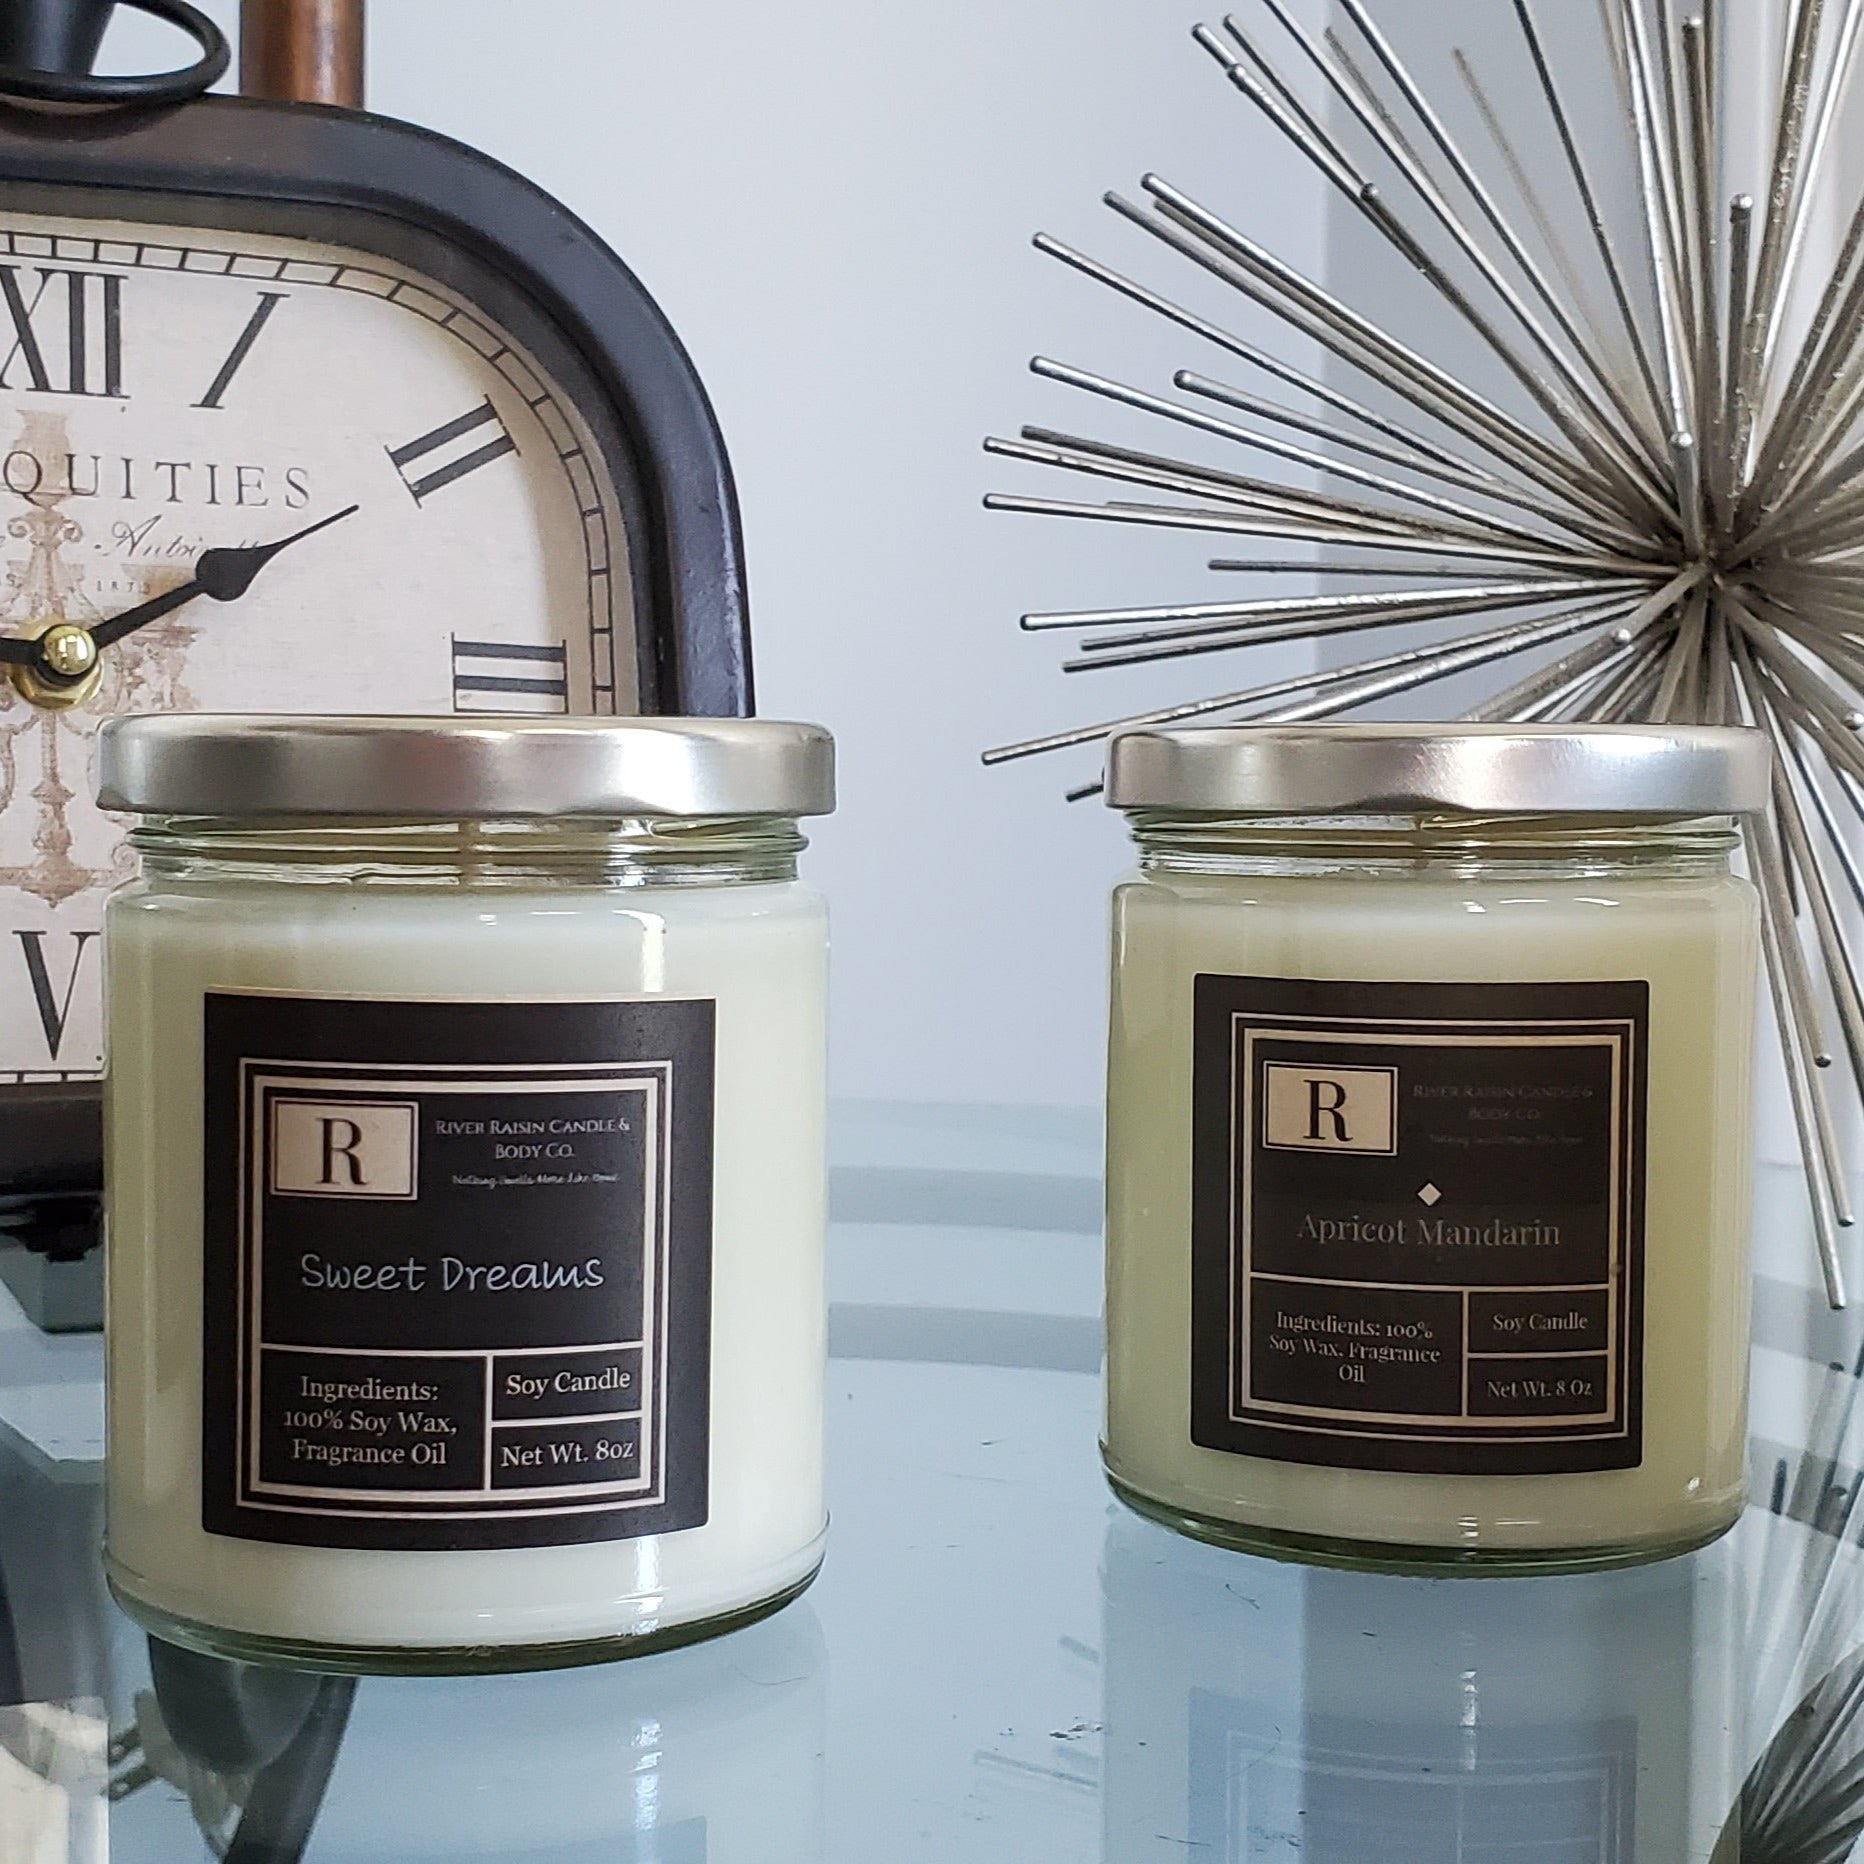 Limited Jelly Jar Candle